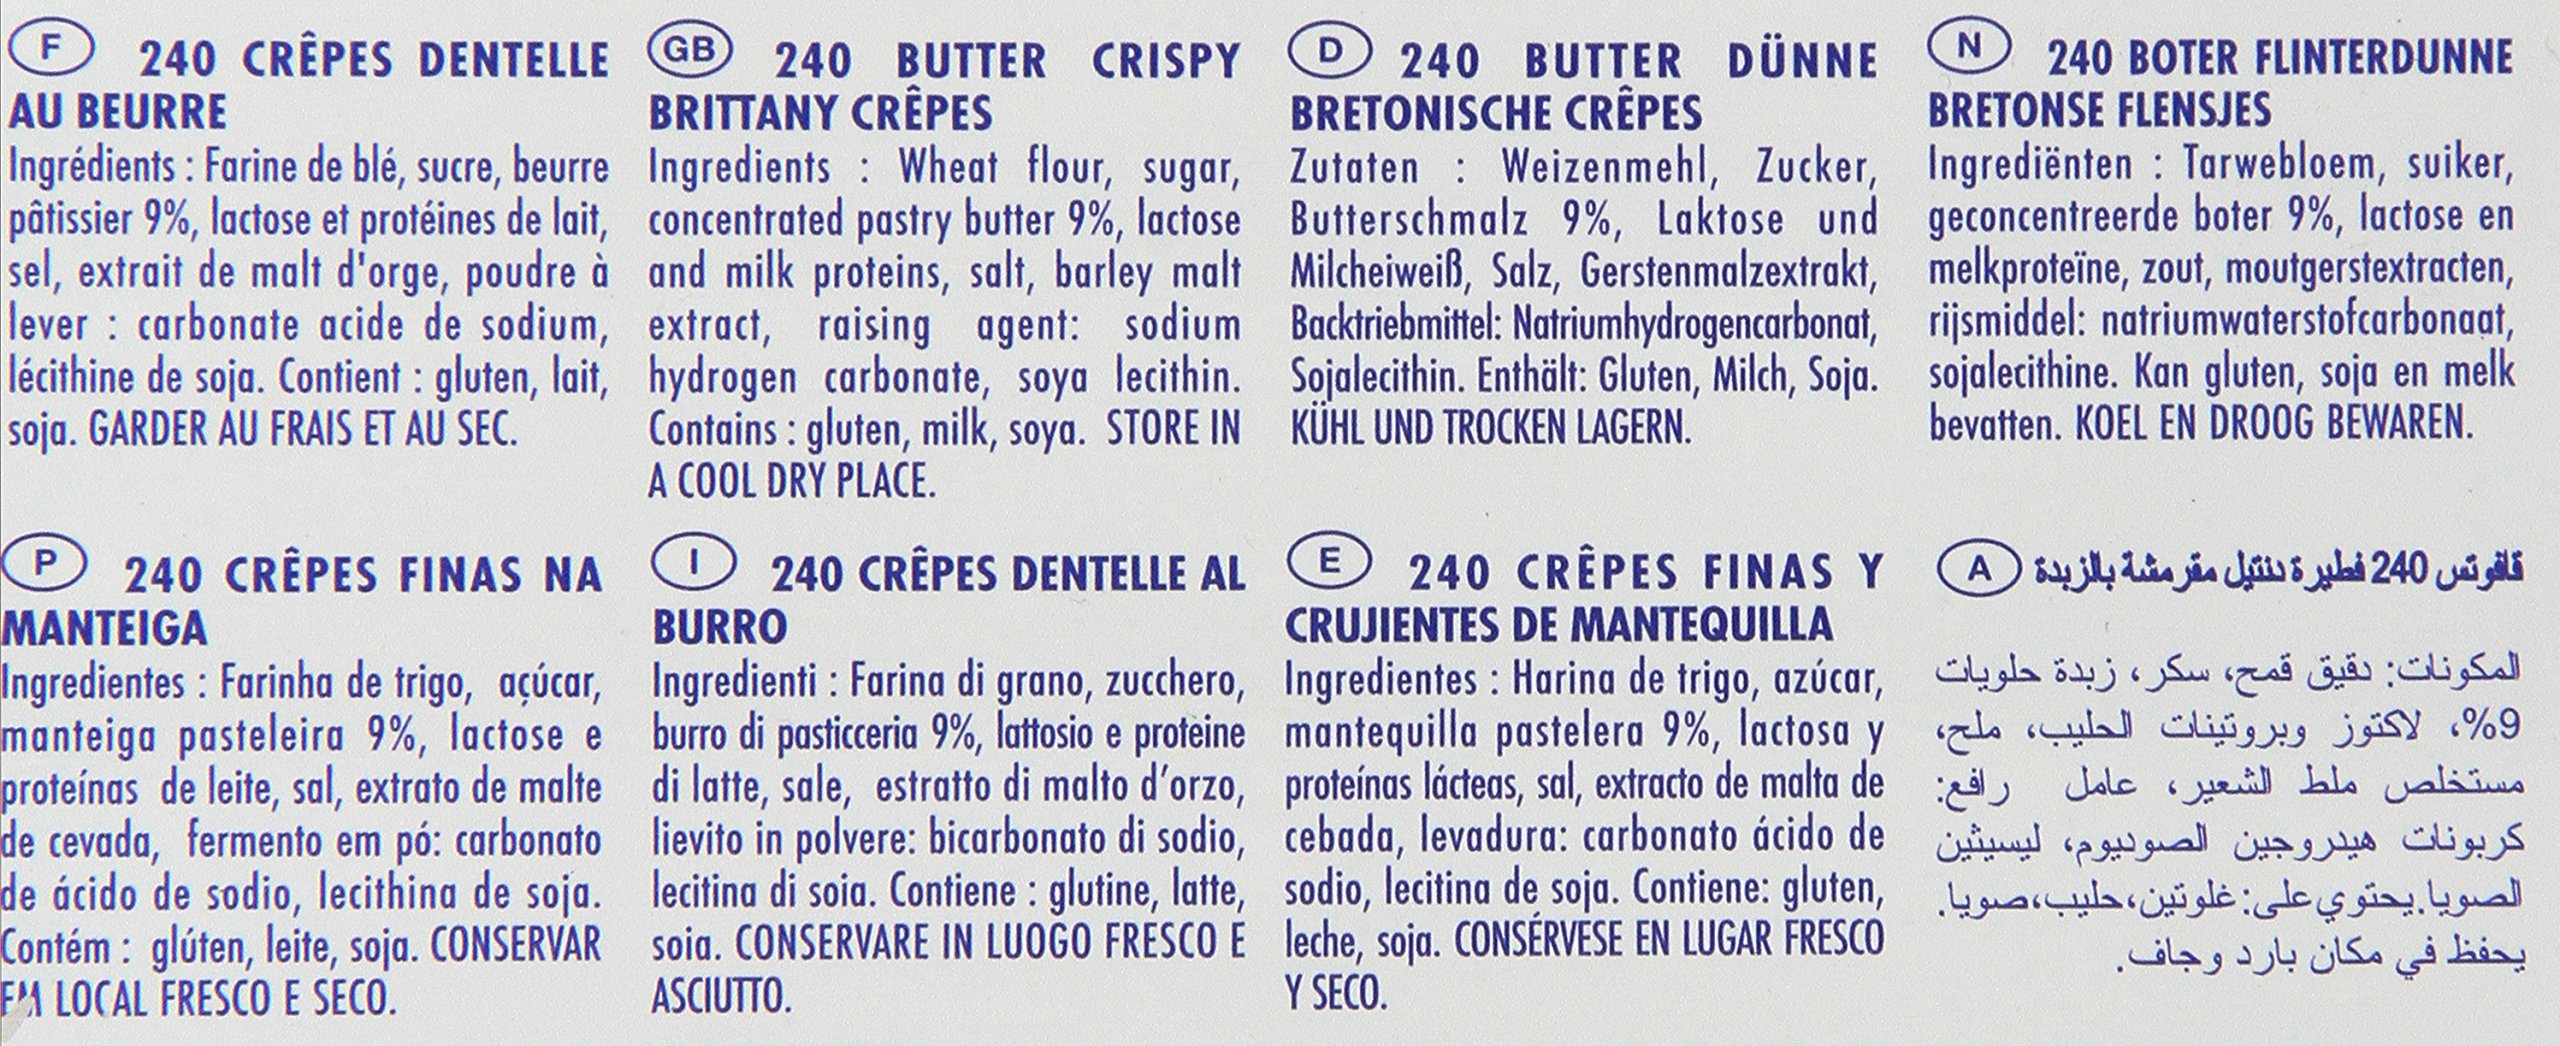 Gavottes - Crispy Lace Crepes from France, 240ct, 44oz by Loc Maria (Image #2)